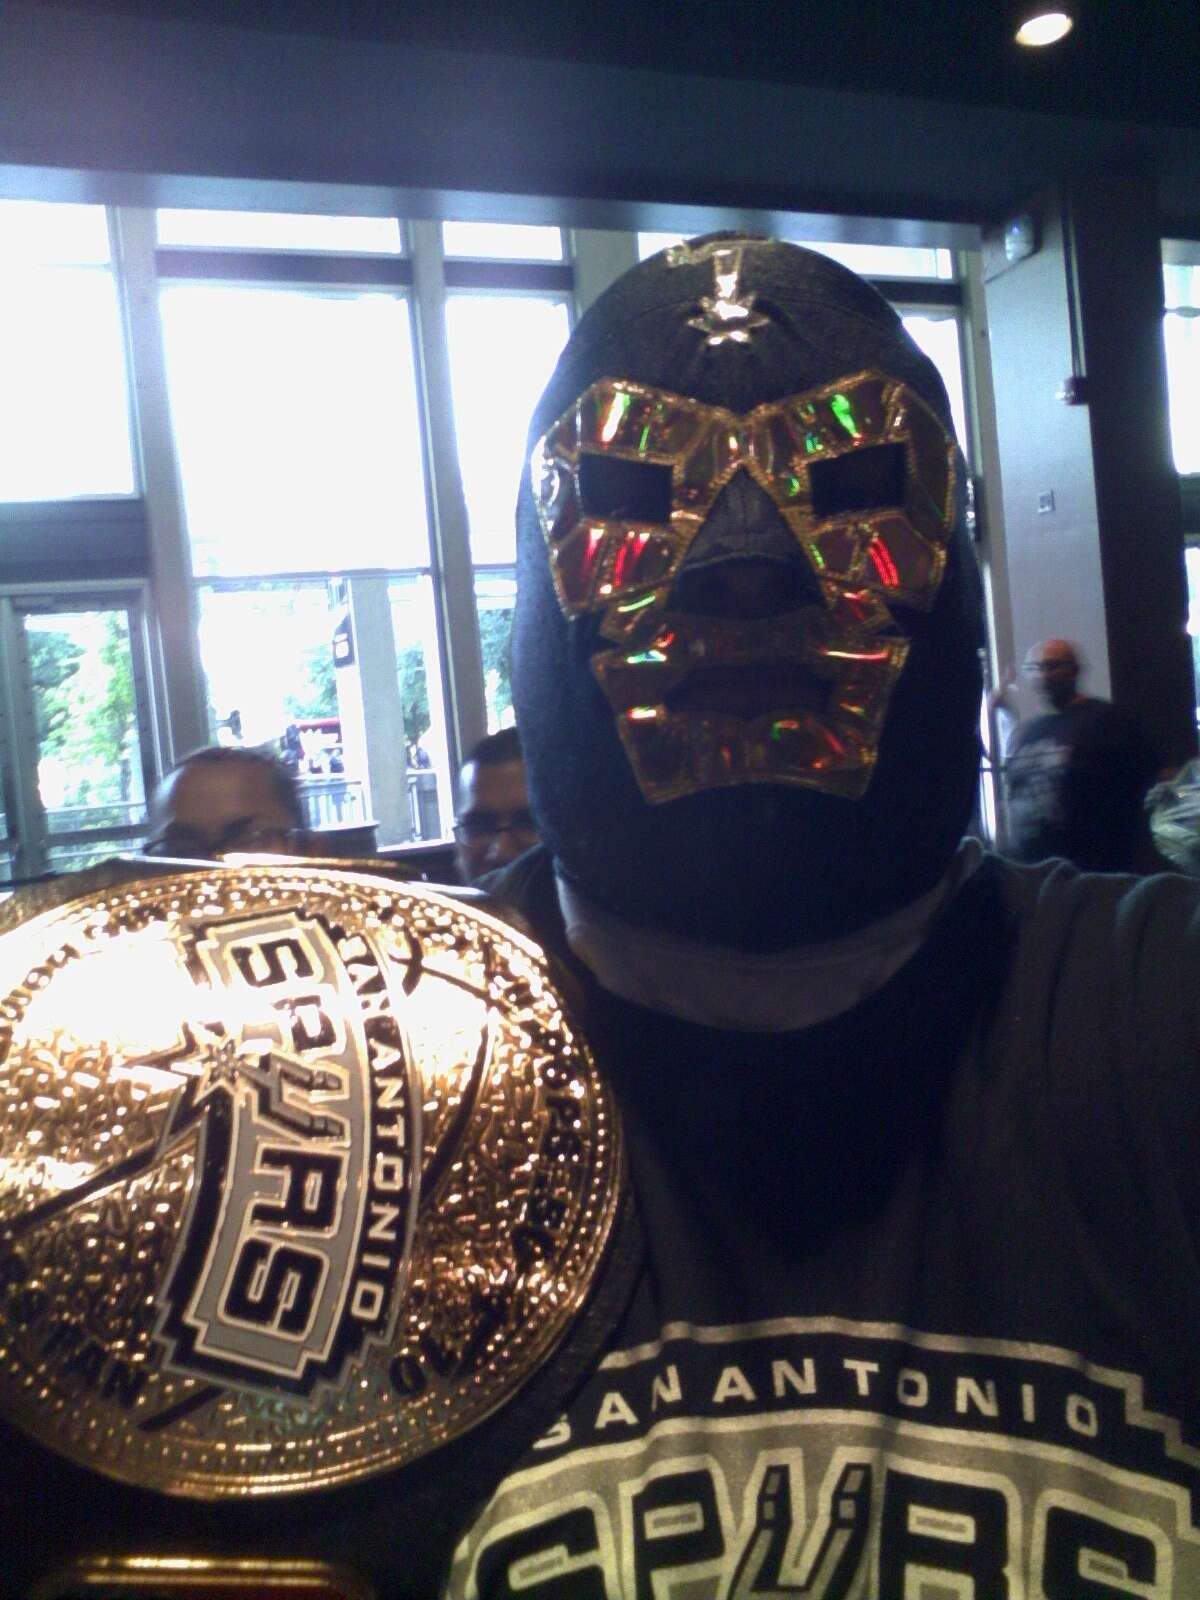 This Spurs fan, otherwise known as the Spurs Big Homie, dons a silver and black luchador mask complete with a title belt.